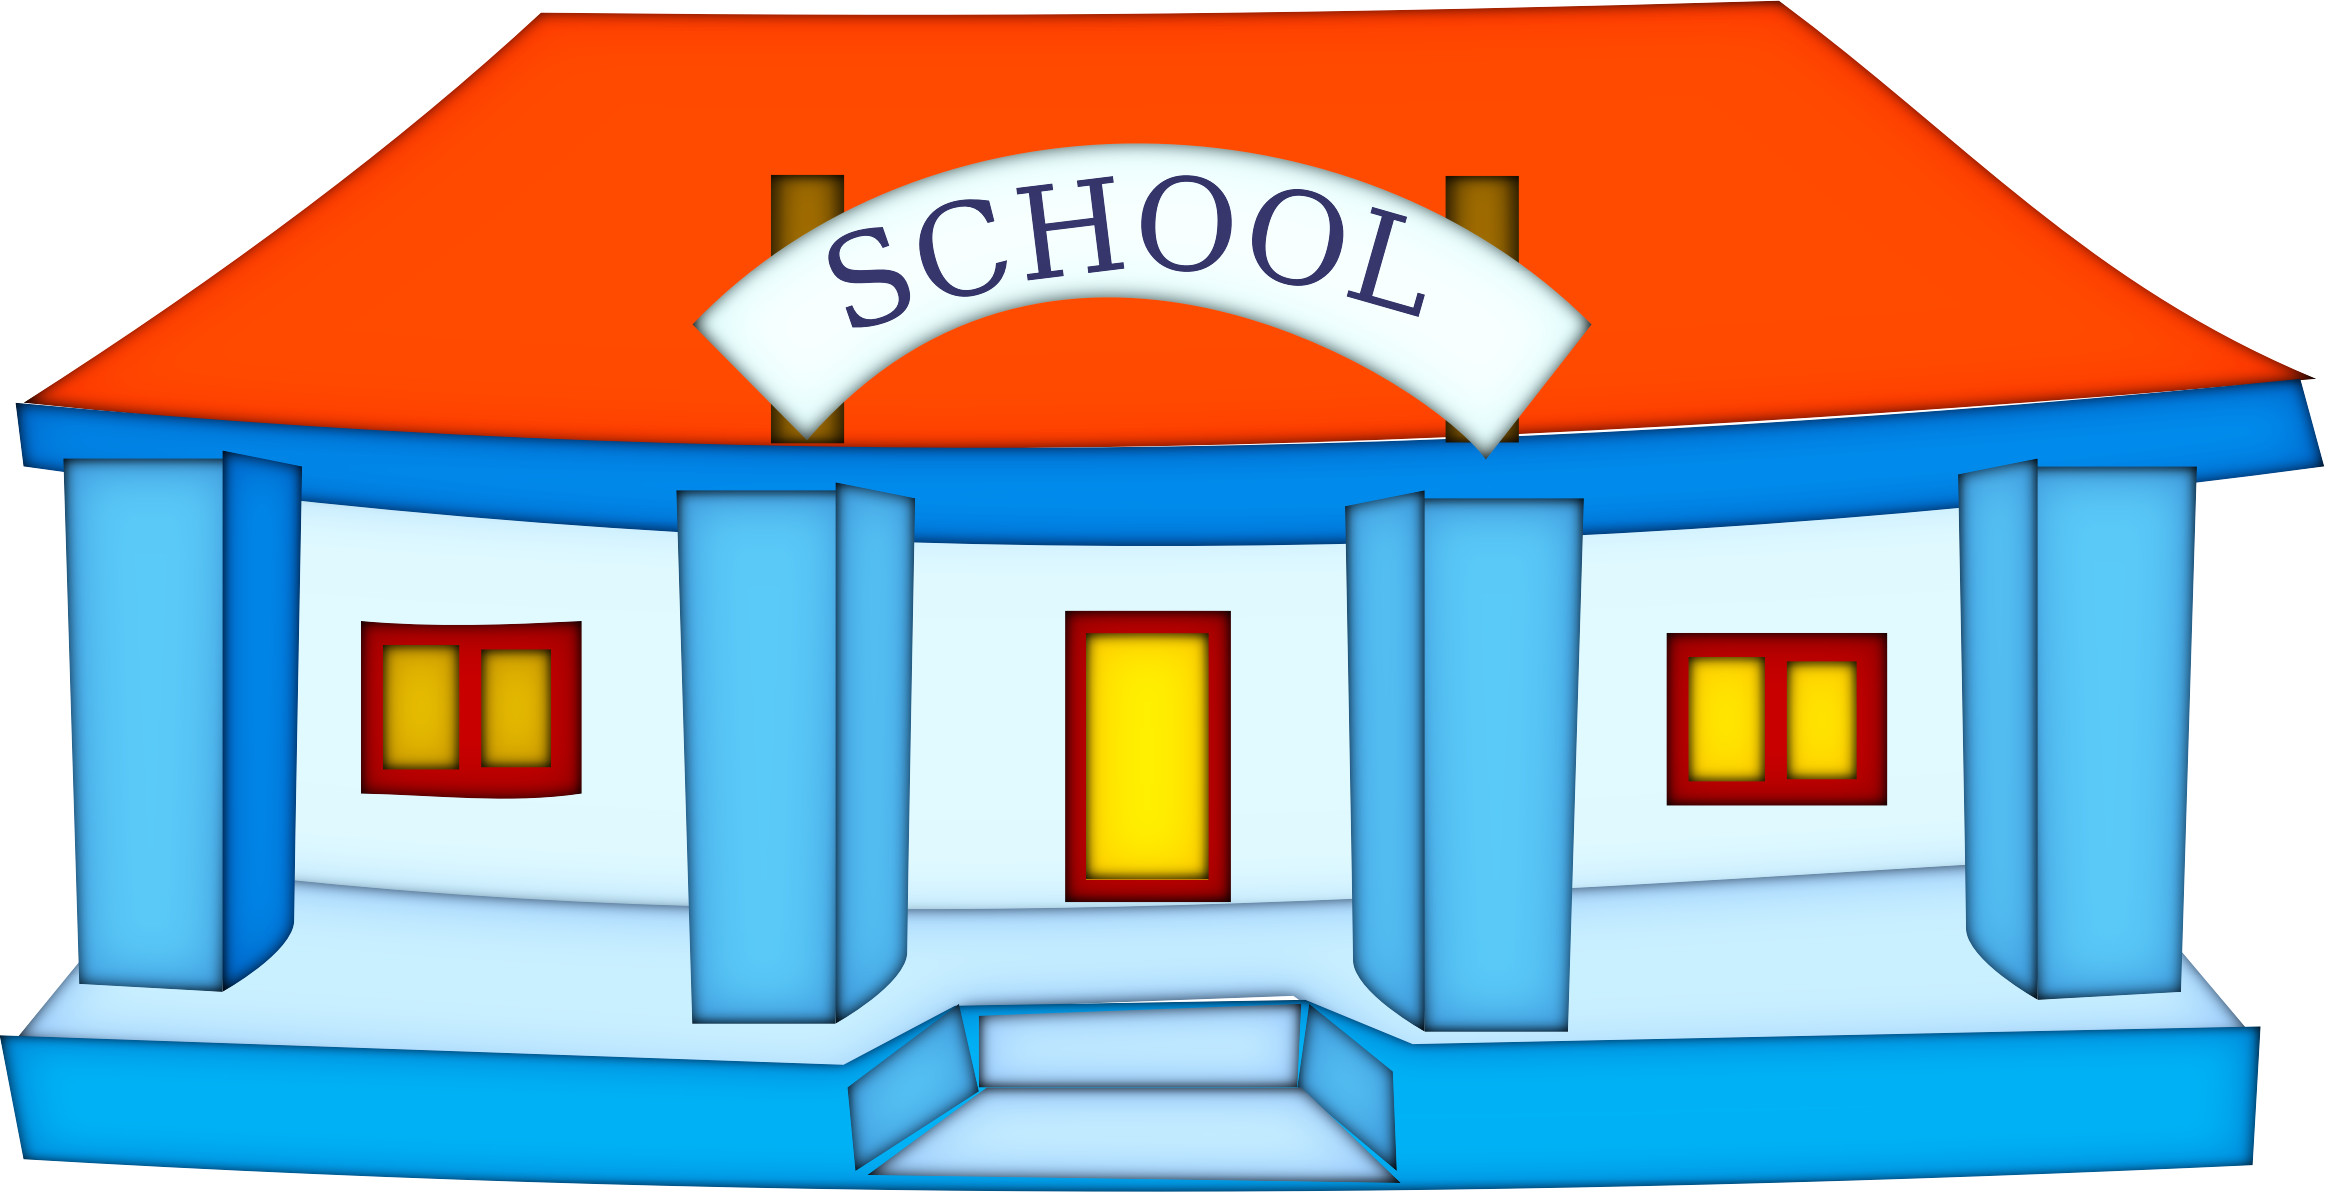 Senior high school clipart clip download school-building by @netalloy, real estate clipart, on @openclipart ... clip download